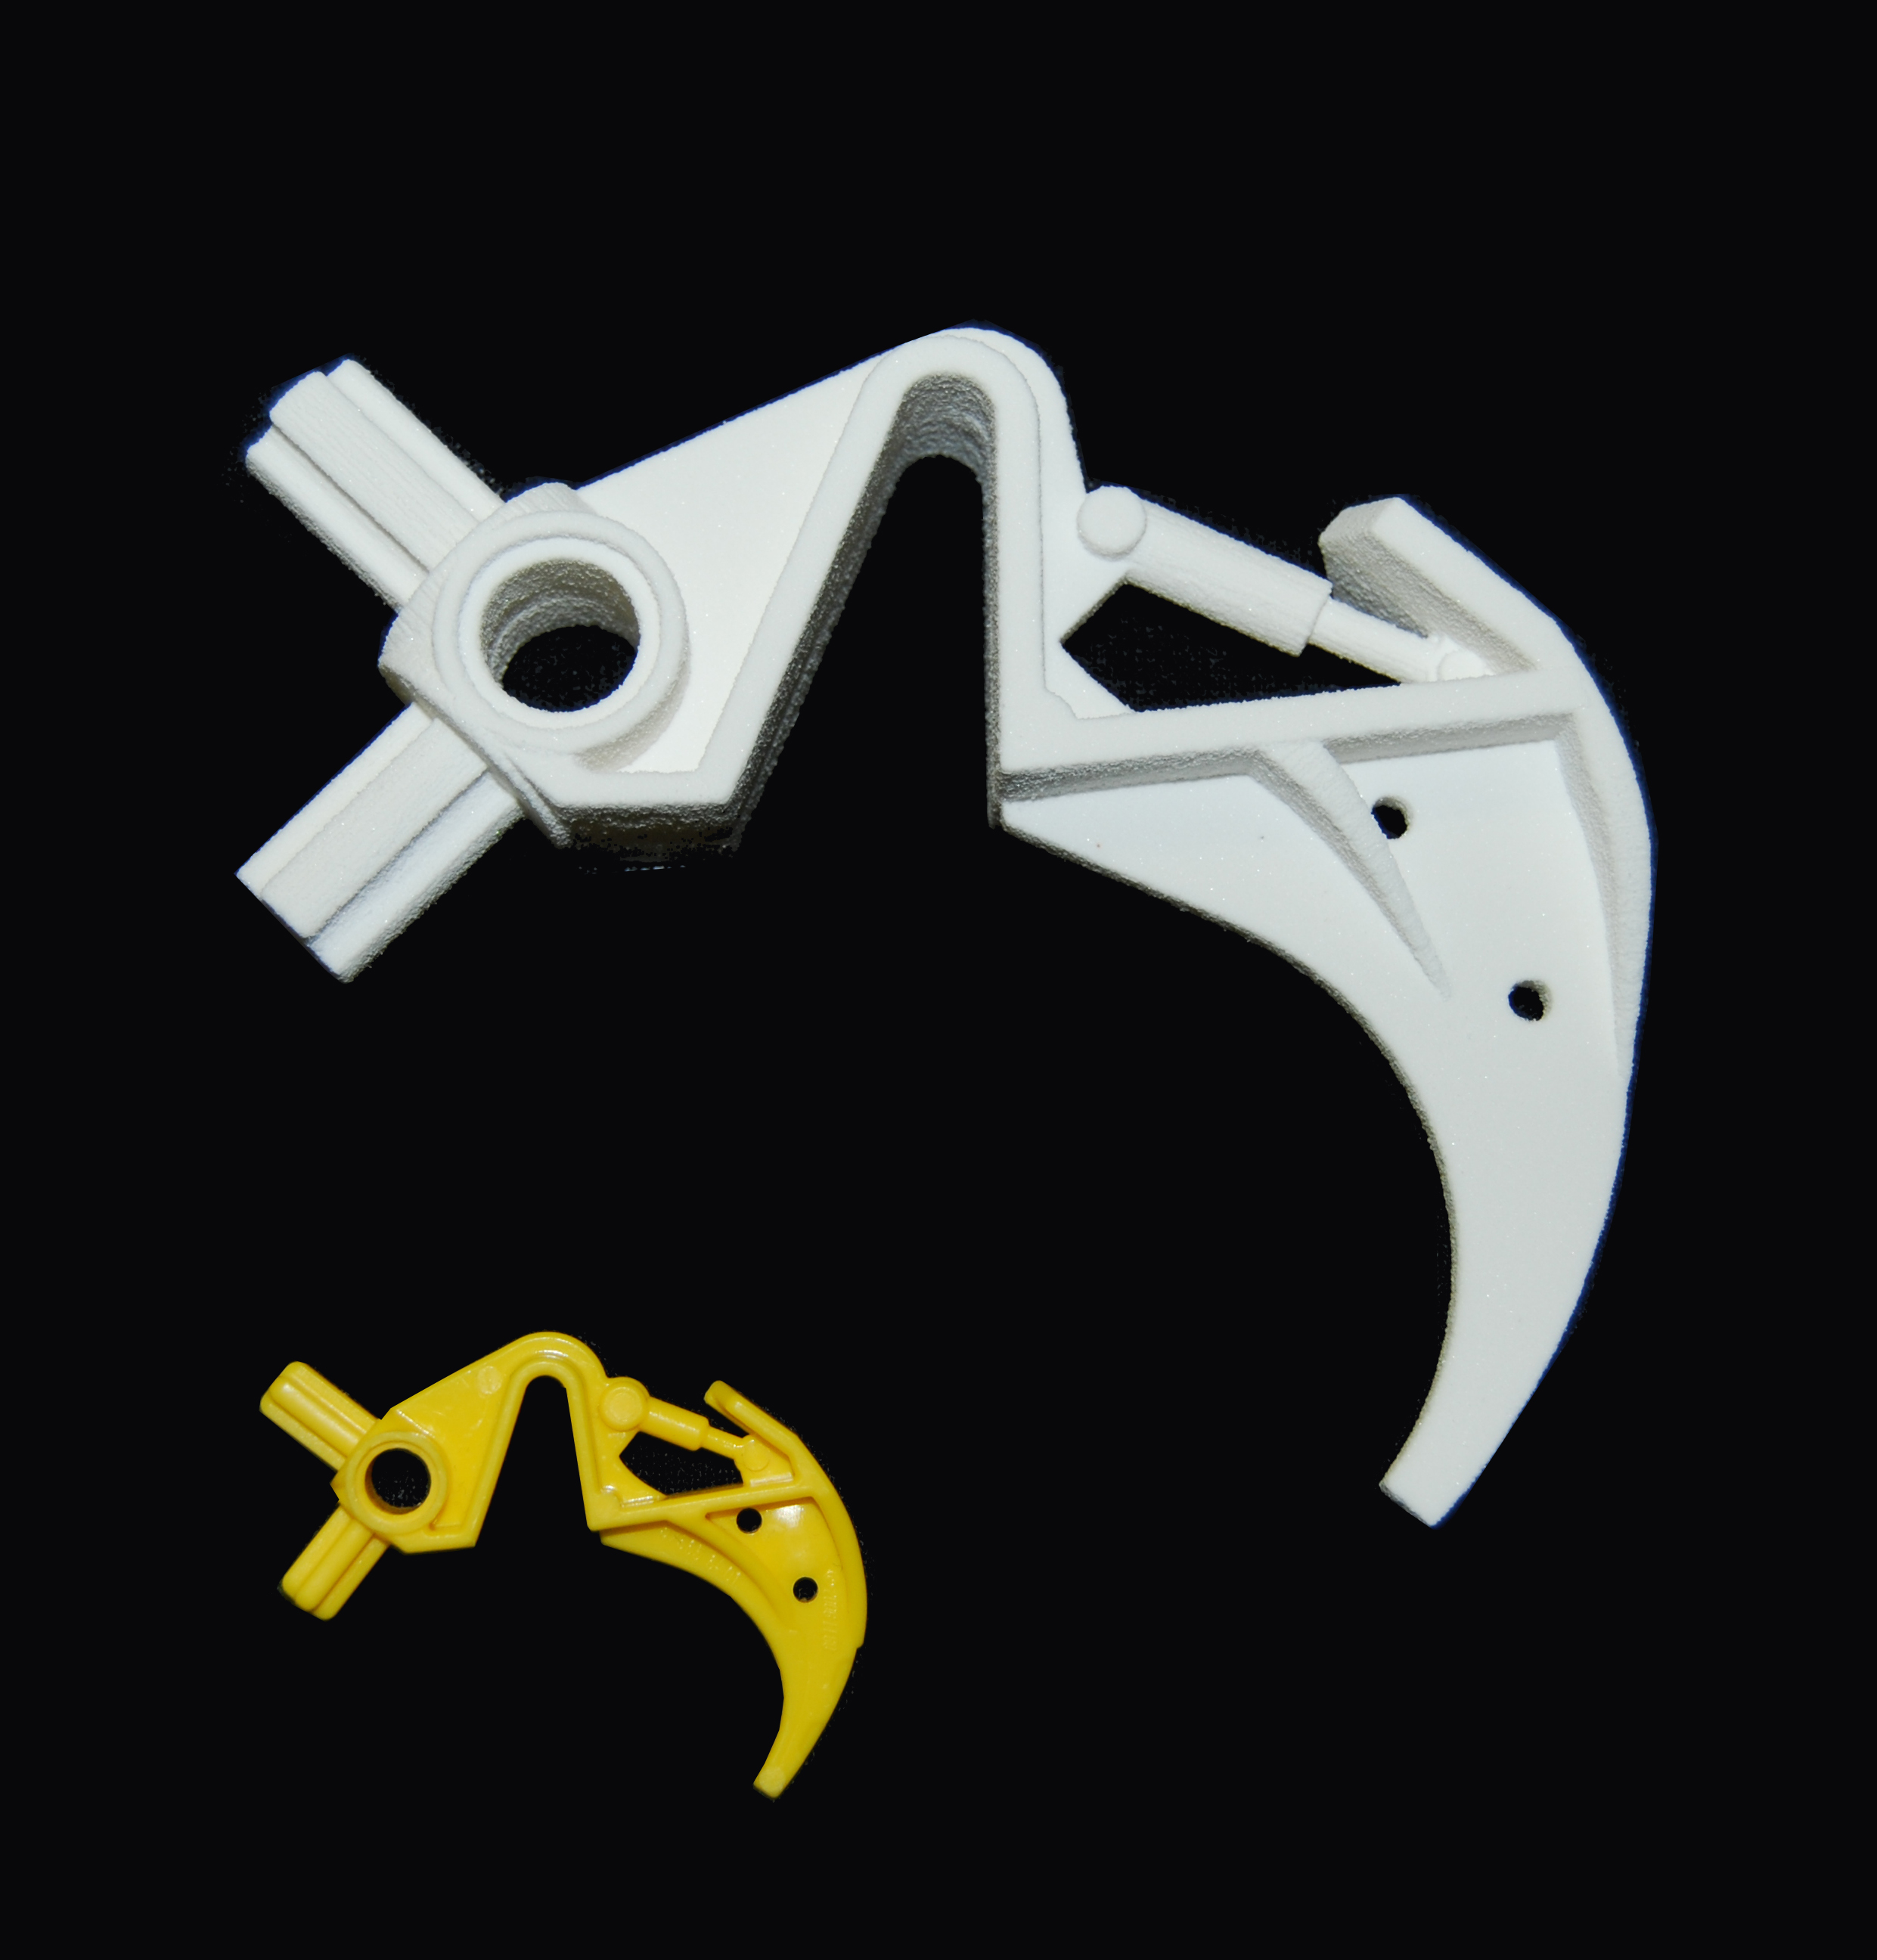 3D Printing a Bionicle Piece [Piece in Yellow, 3D Print in White]